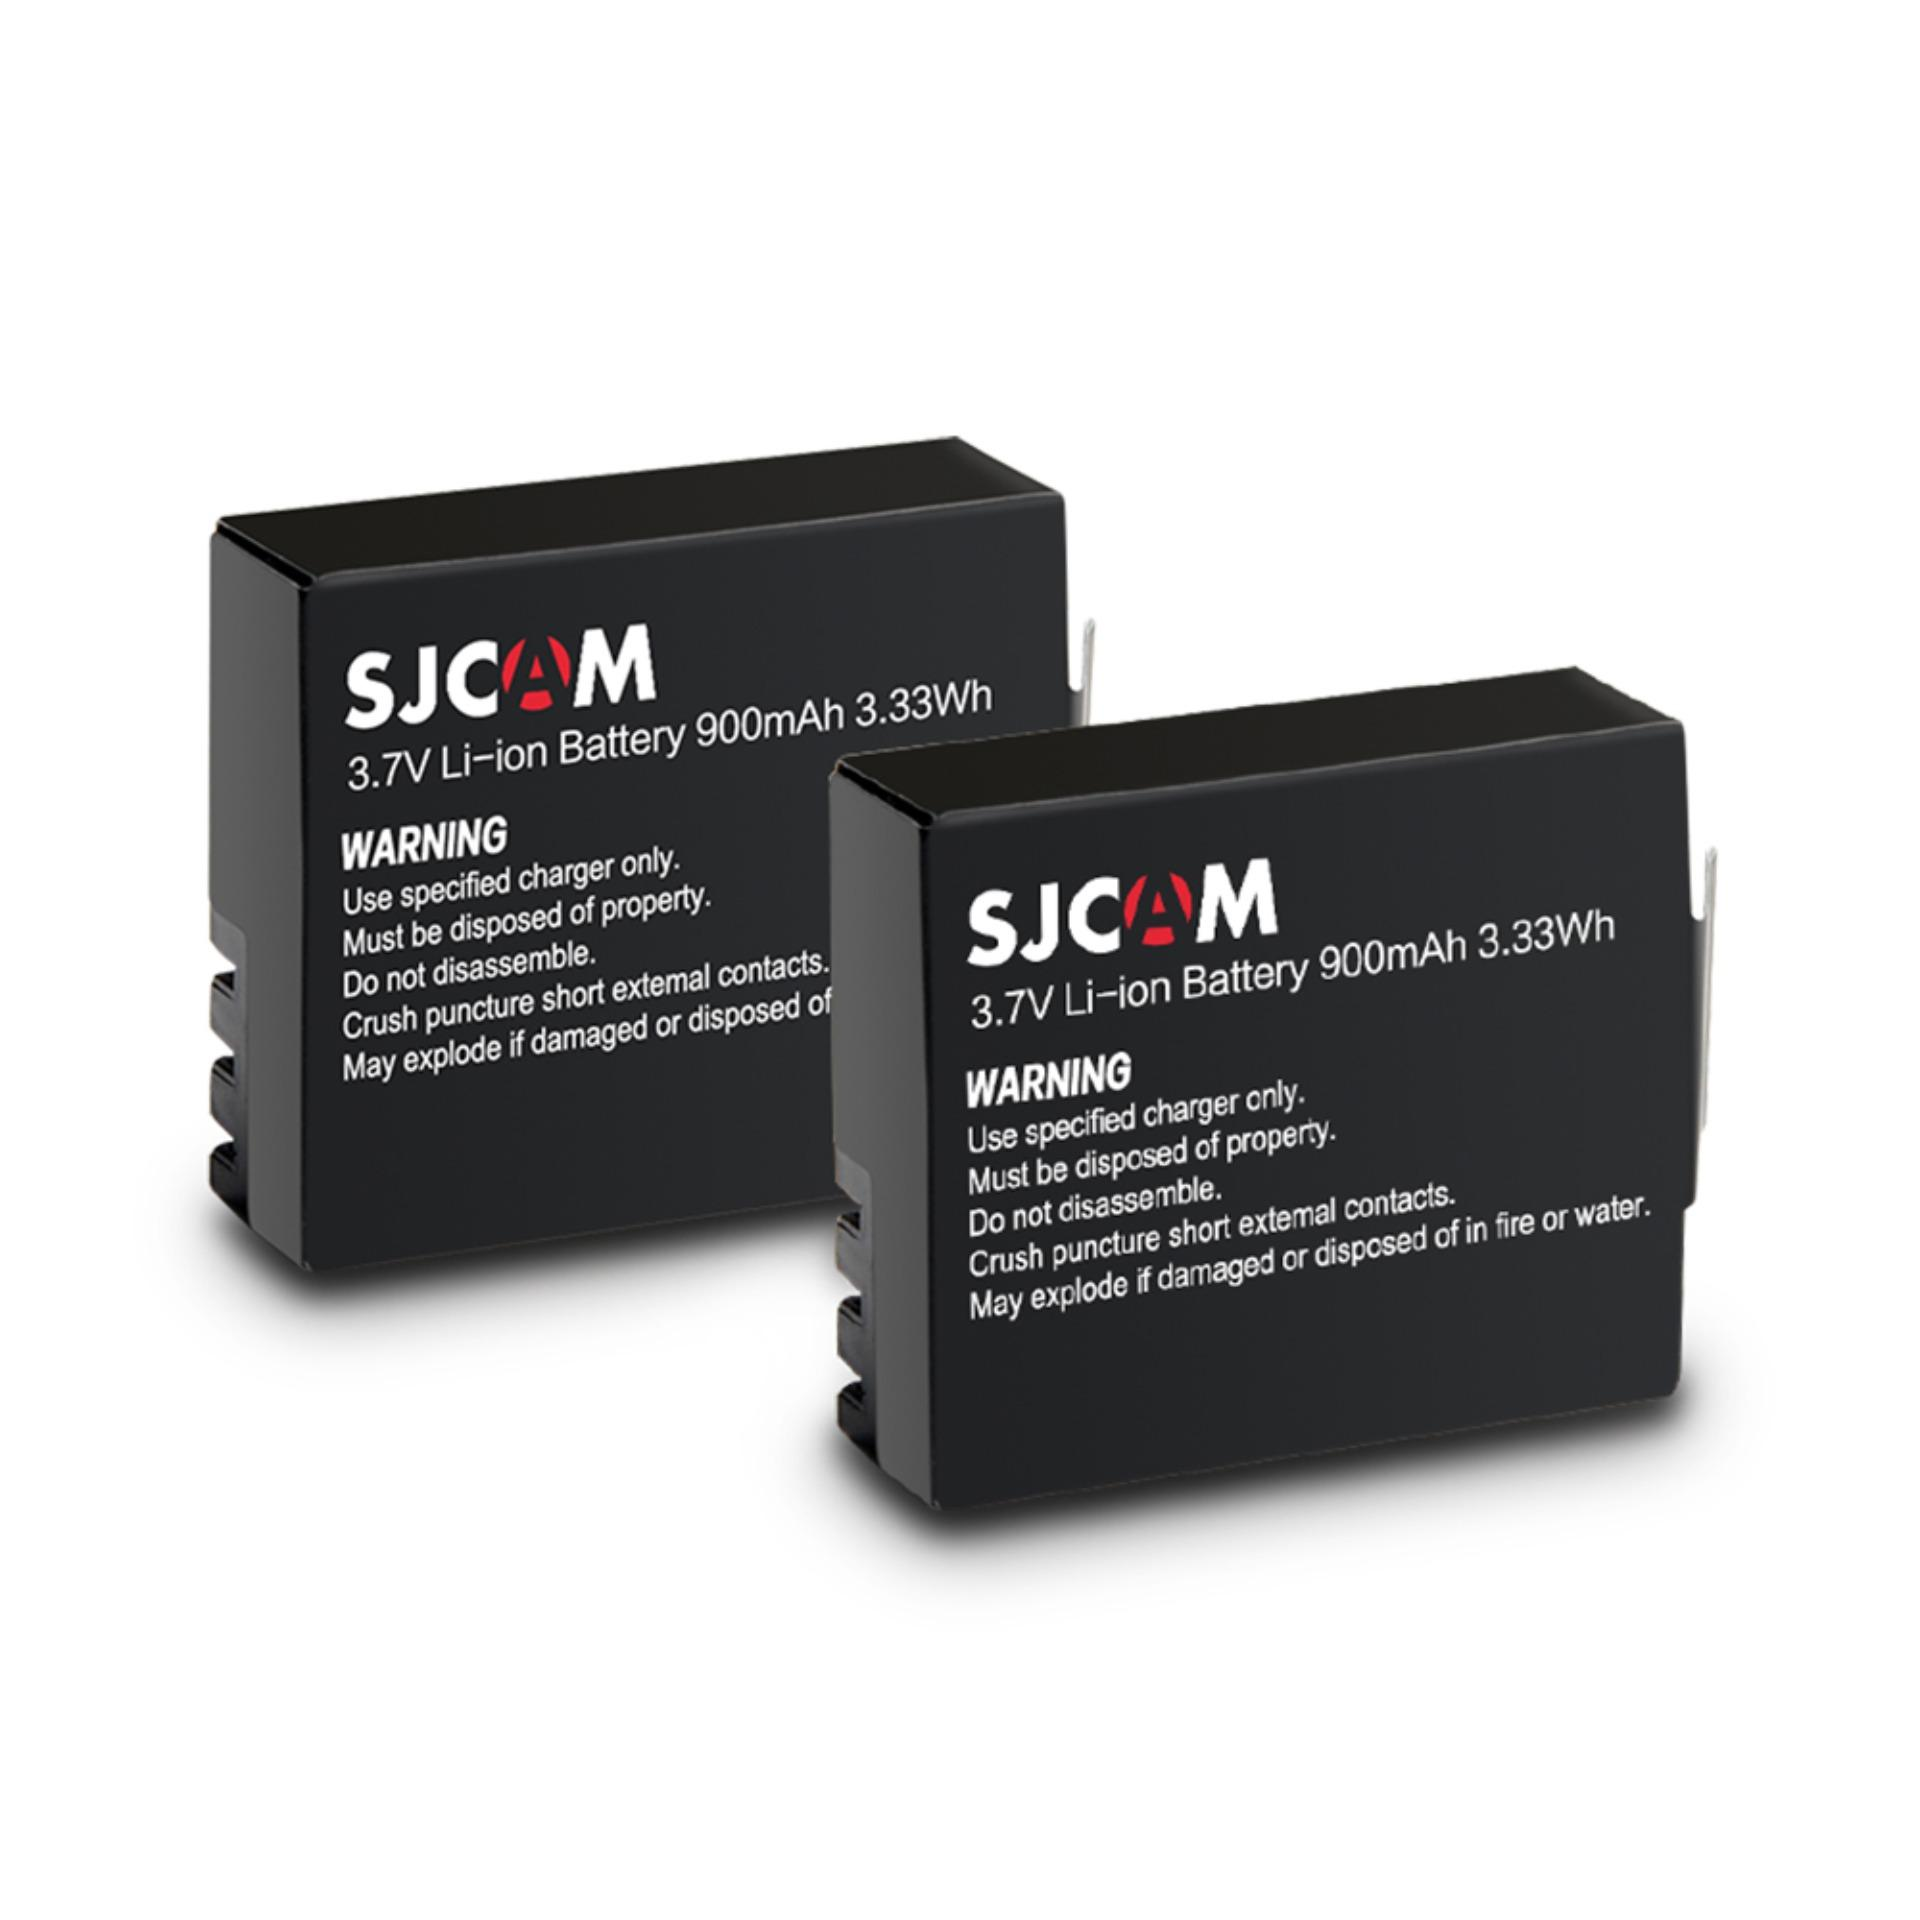 Sjcam 2 Pieces 900mah Replacement Battery For Sj4000, Sj5000, M10 (black) By Sjcam